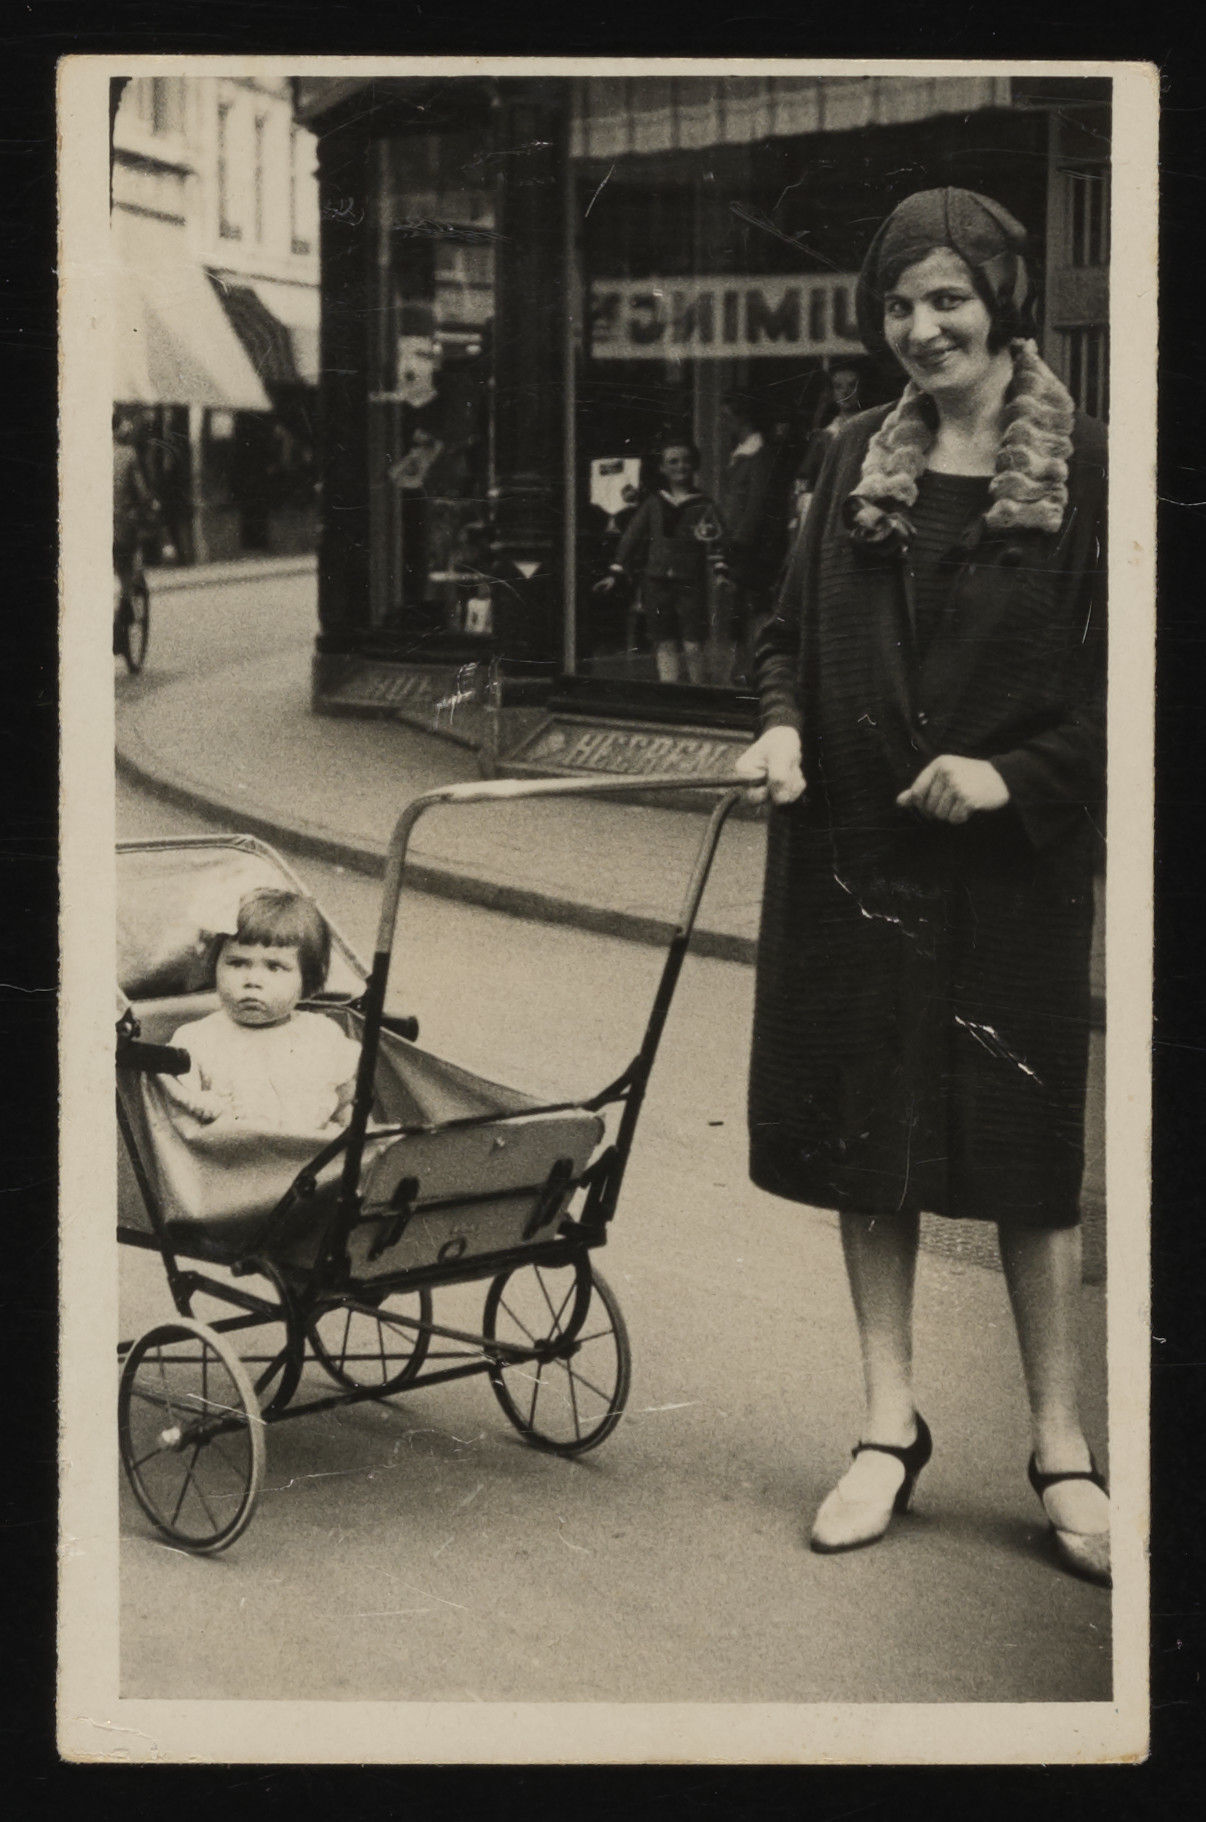 A mother poses for a street photograph with her baby daughter in a stroller, outside a store in Amsterdam.  Pictured are Benjamina and Bertie Serphos.